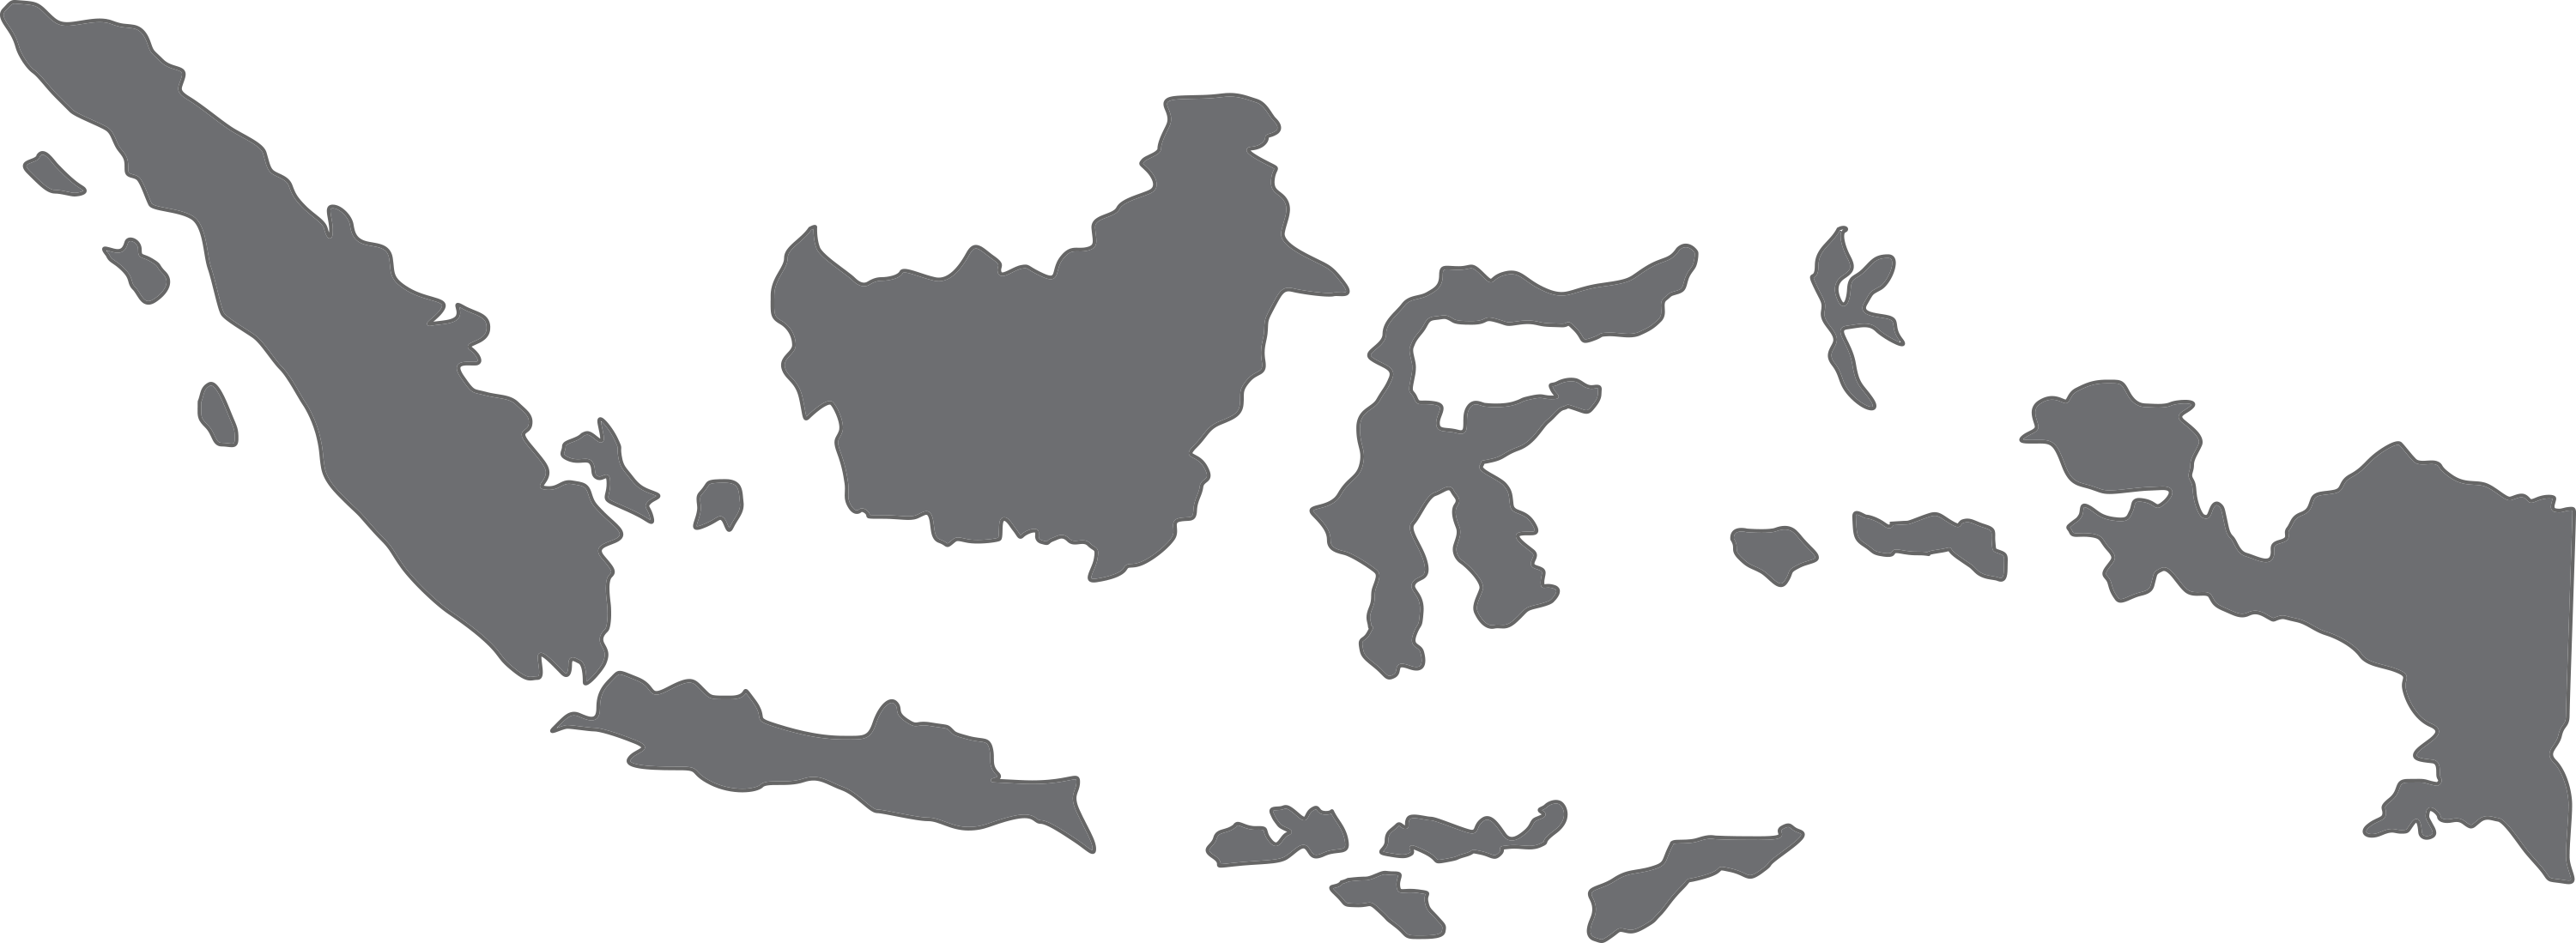 Map Globe Indonesia Blank Hq Image Free Png.